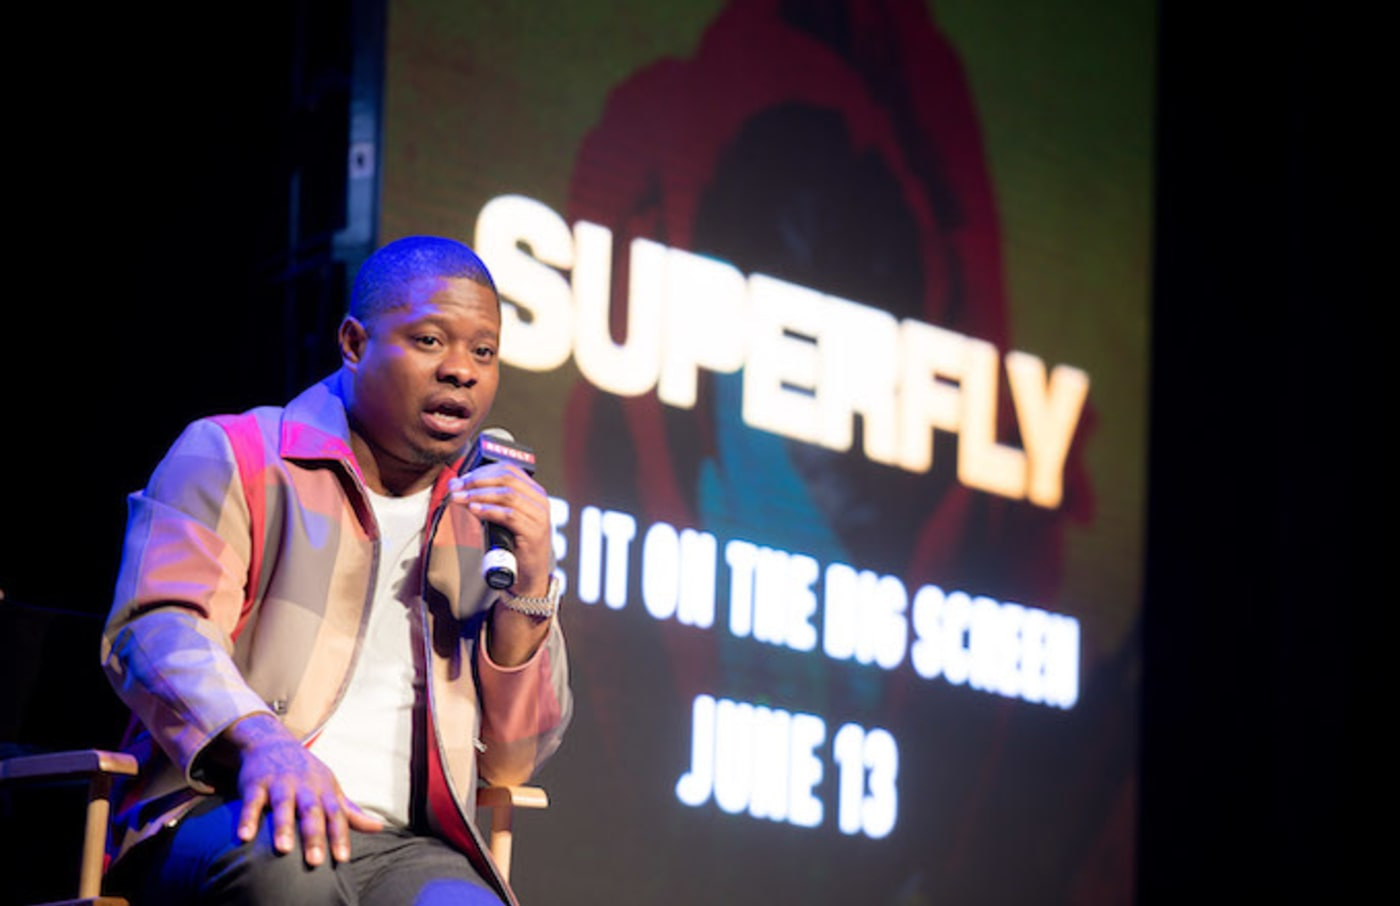 jason mitchell dropped over allegations